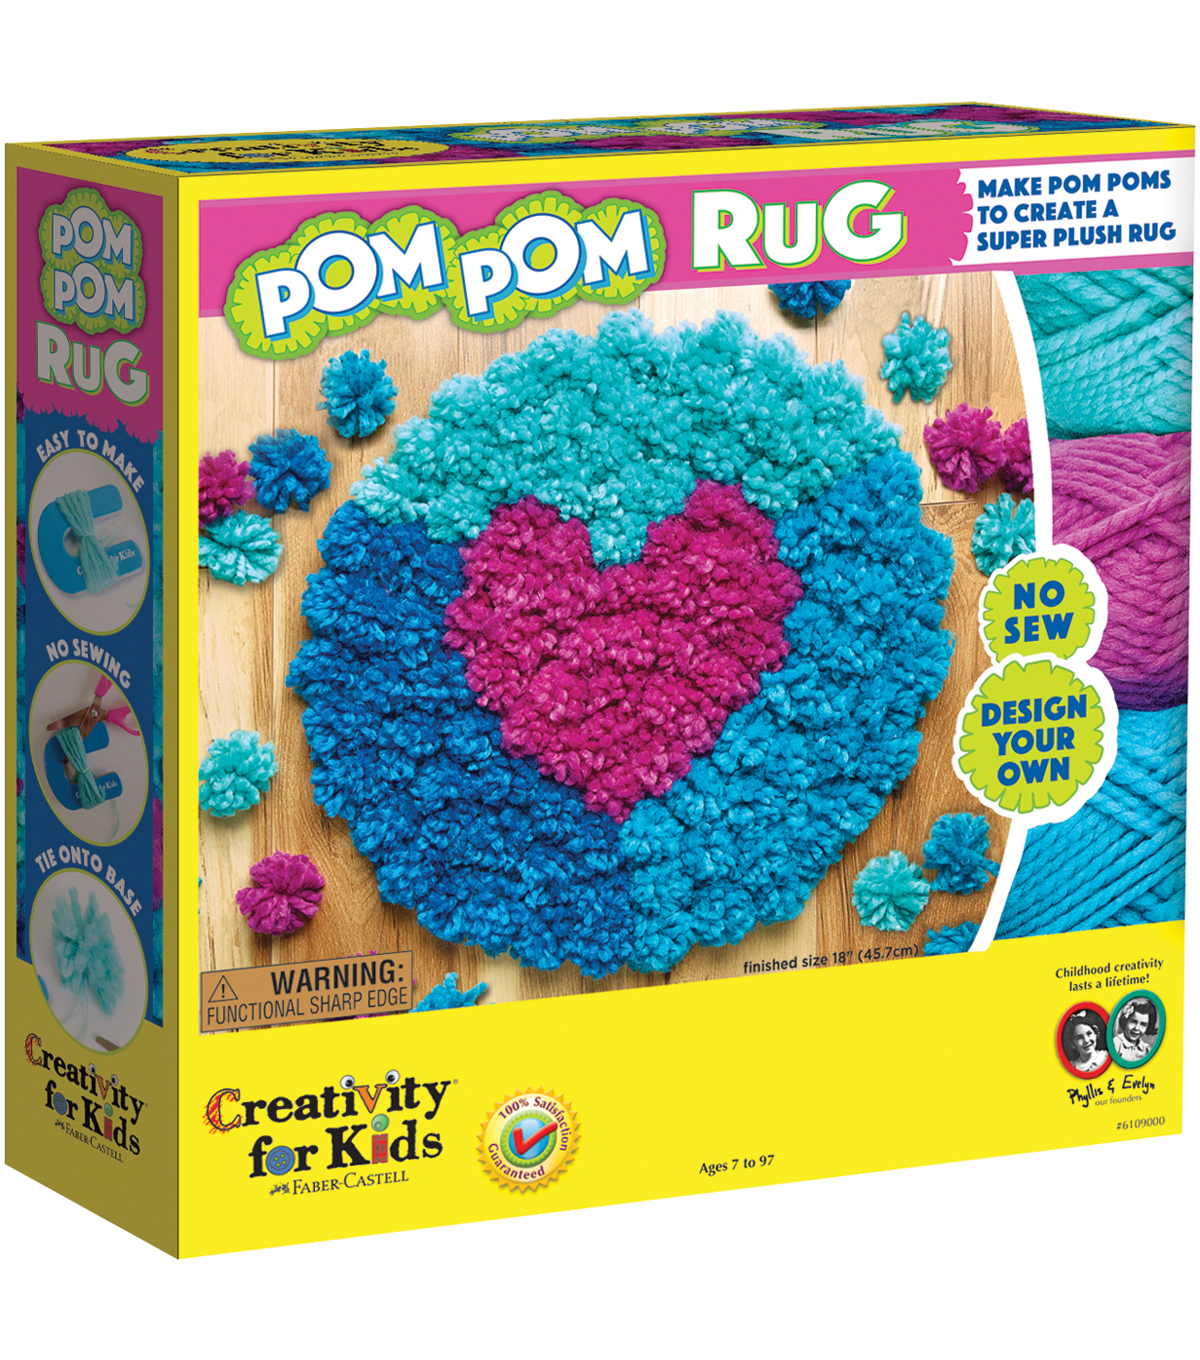 Creativity For Kids Make Your Own Pom Rug Maker Kit